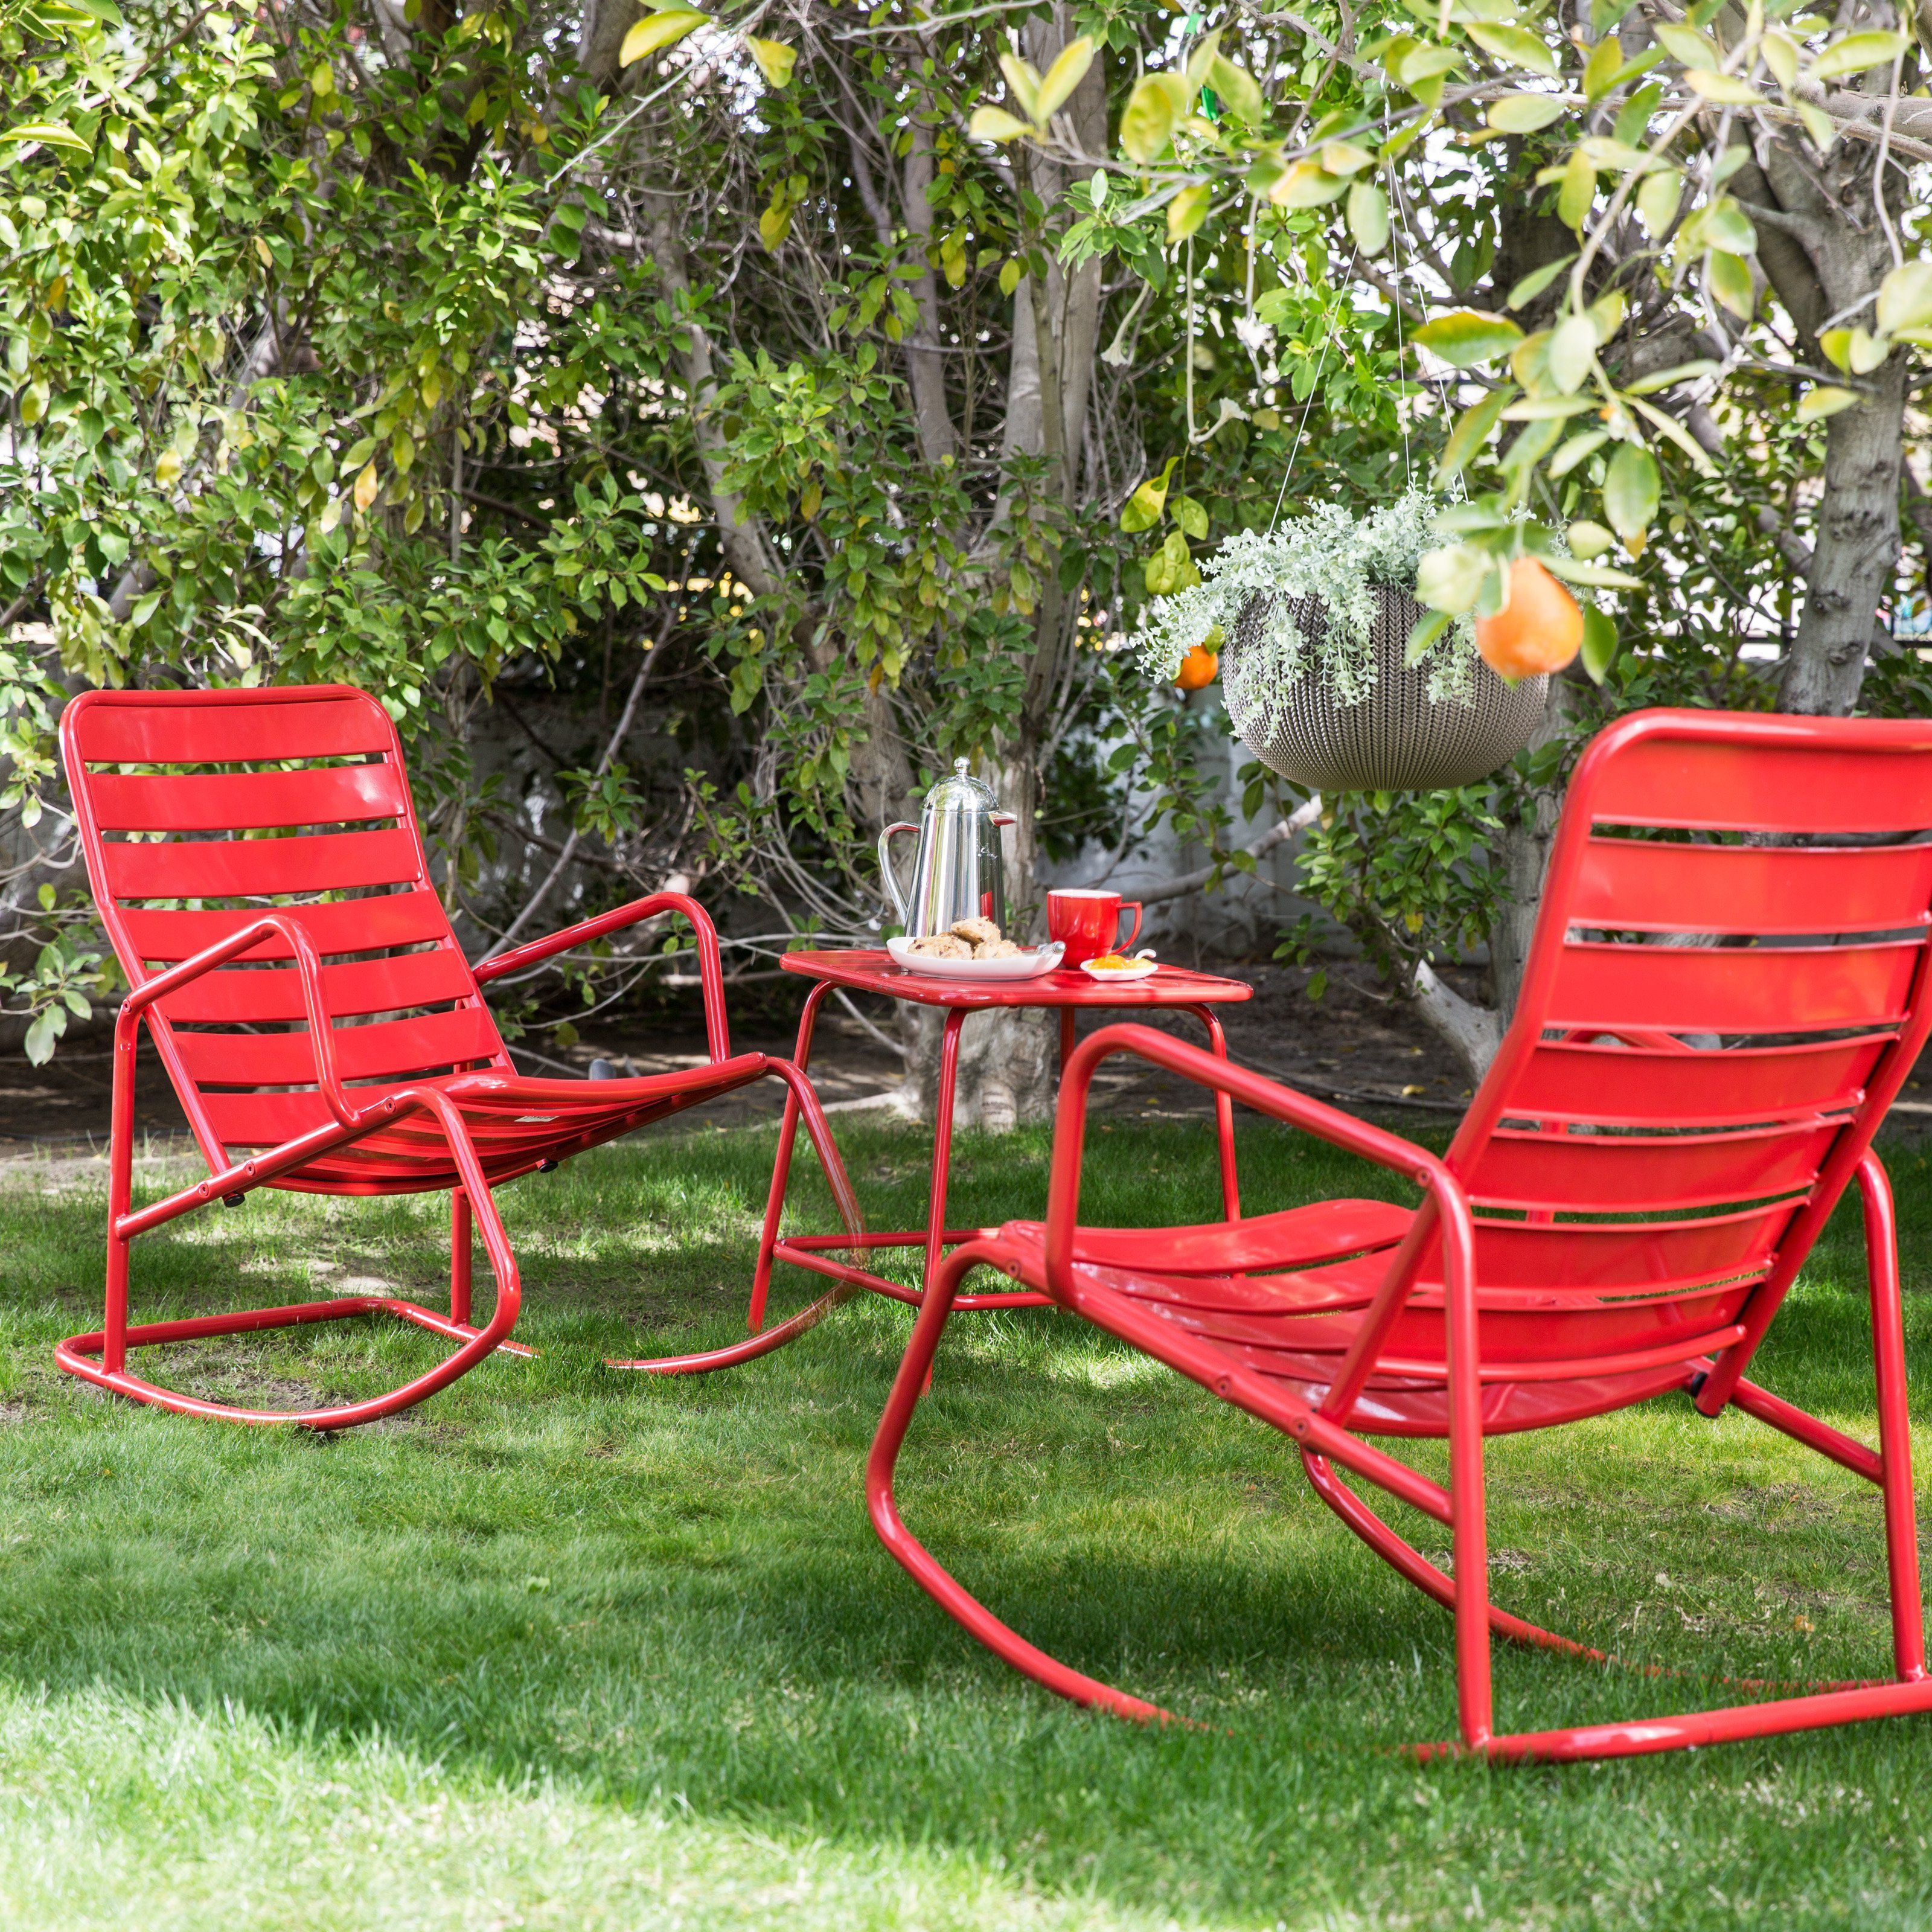 Beau Belham Living Adley Outdoor Metal Rocking Chair Set With Side Table | From  Hayneedle.com